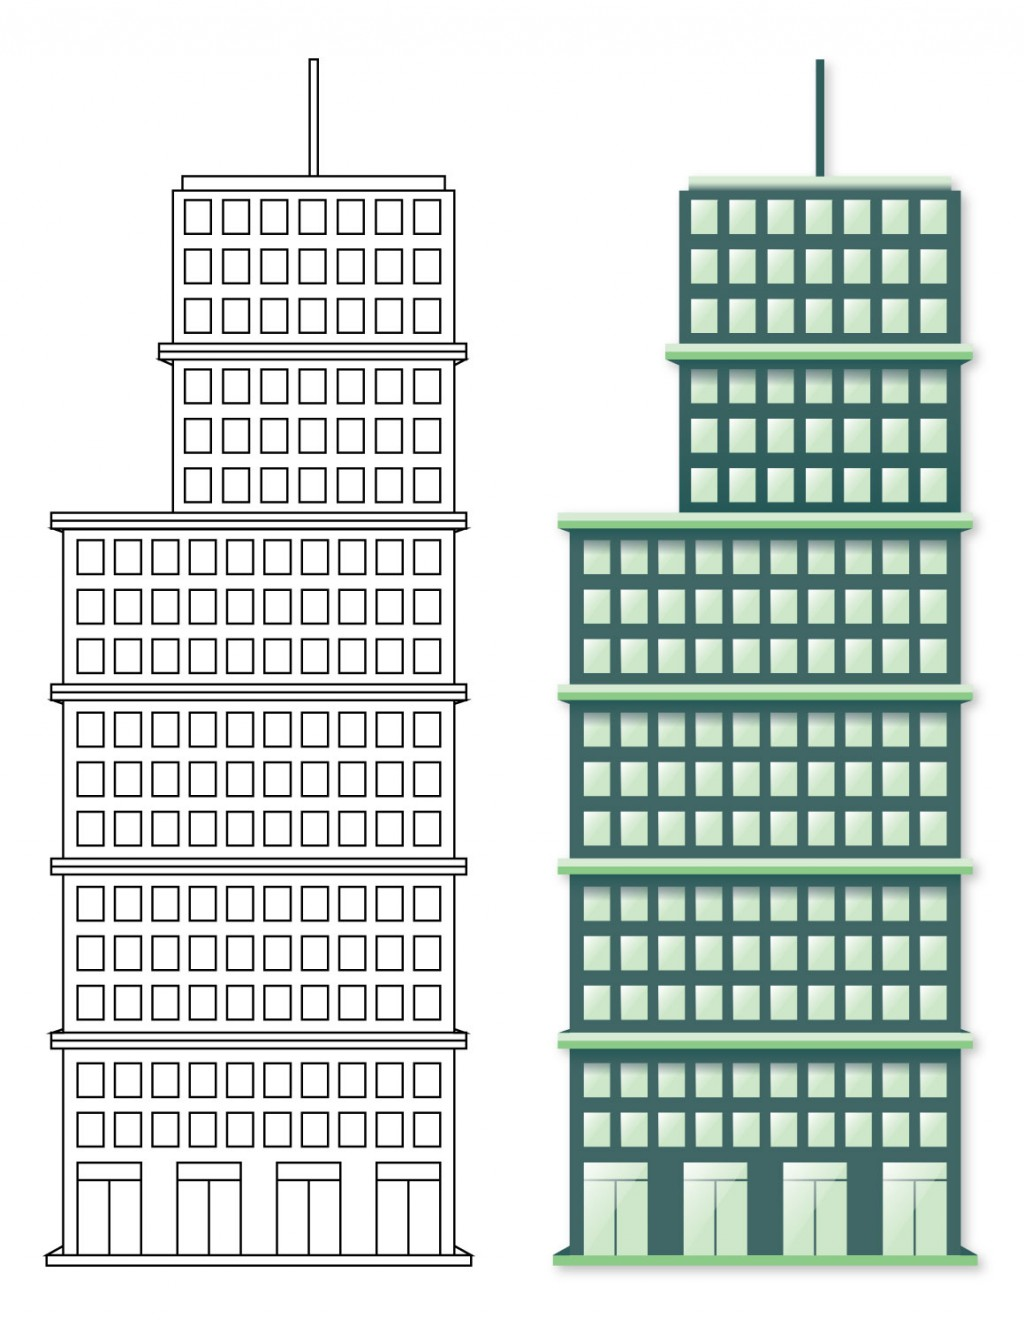 Two illustrations. Top: line art building, Bottom: color filled building. Green skyscraper building.